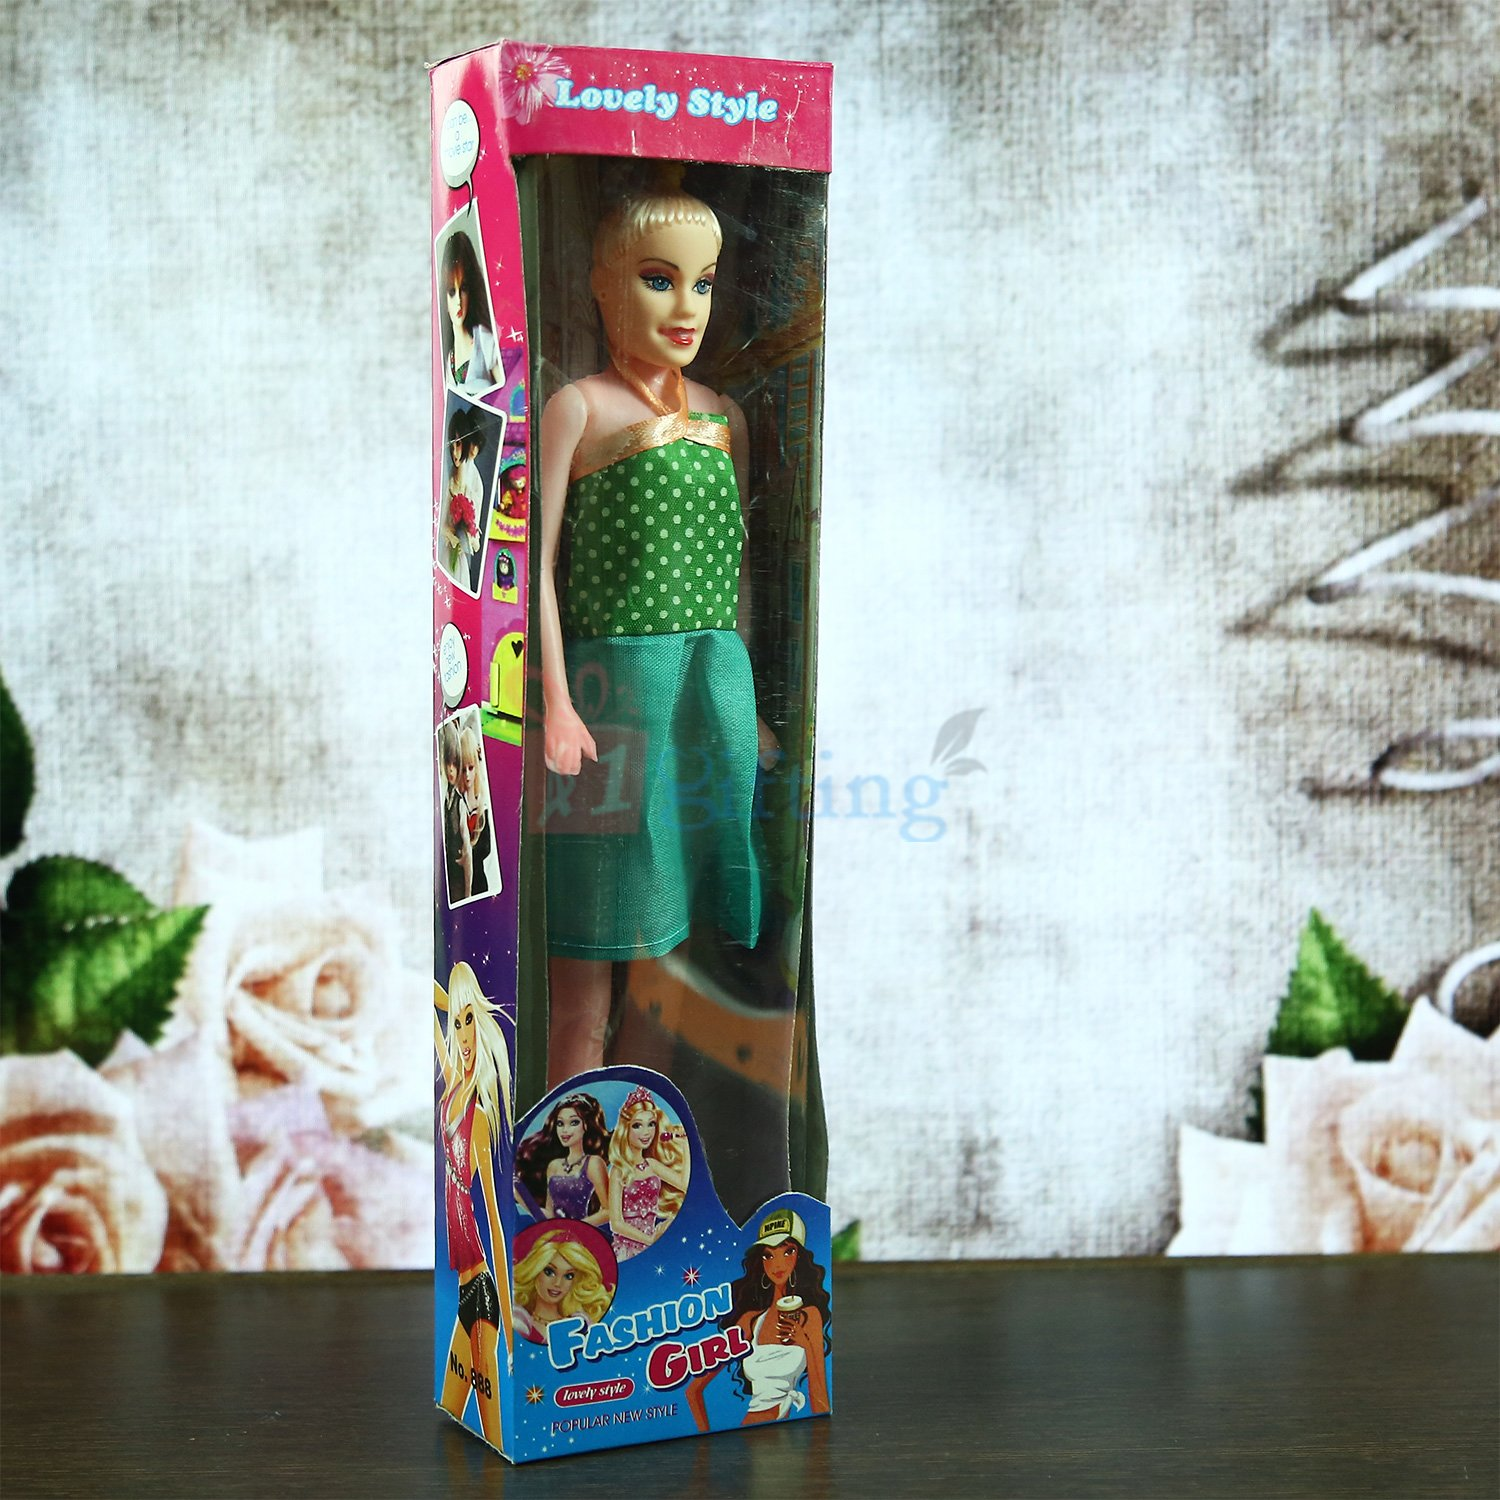 Lovely Style Barbie Doll Toy for Kids